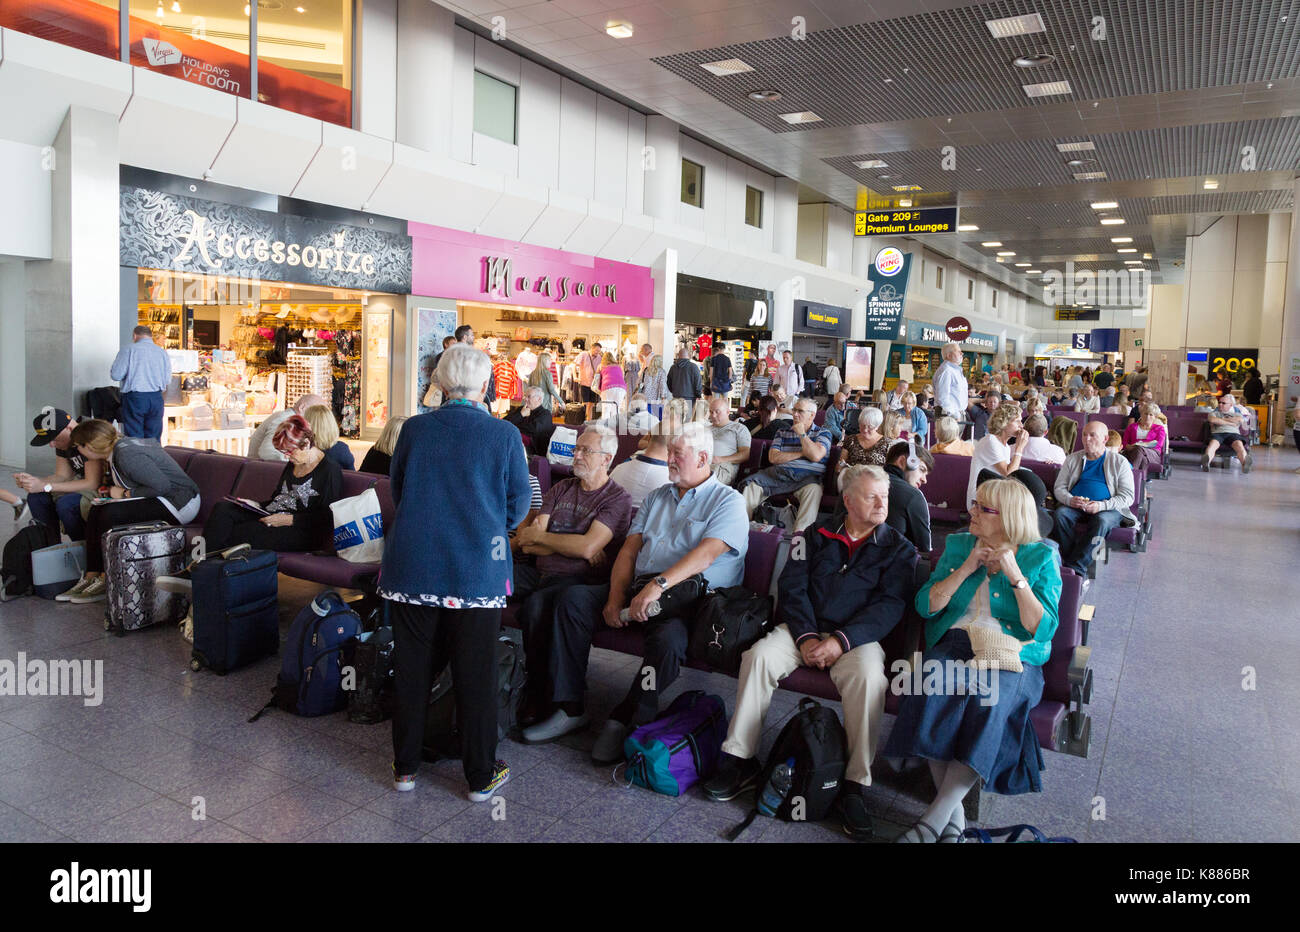 Passengers sitting in departure lounge, Terminal 2, Manchester Airport, England UK - Stock Image